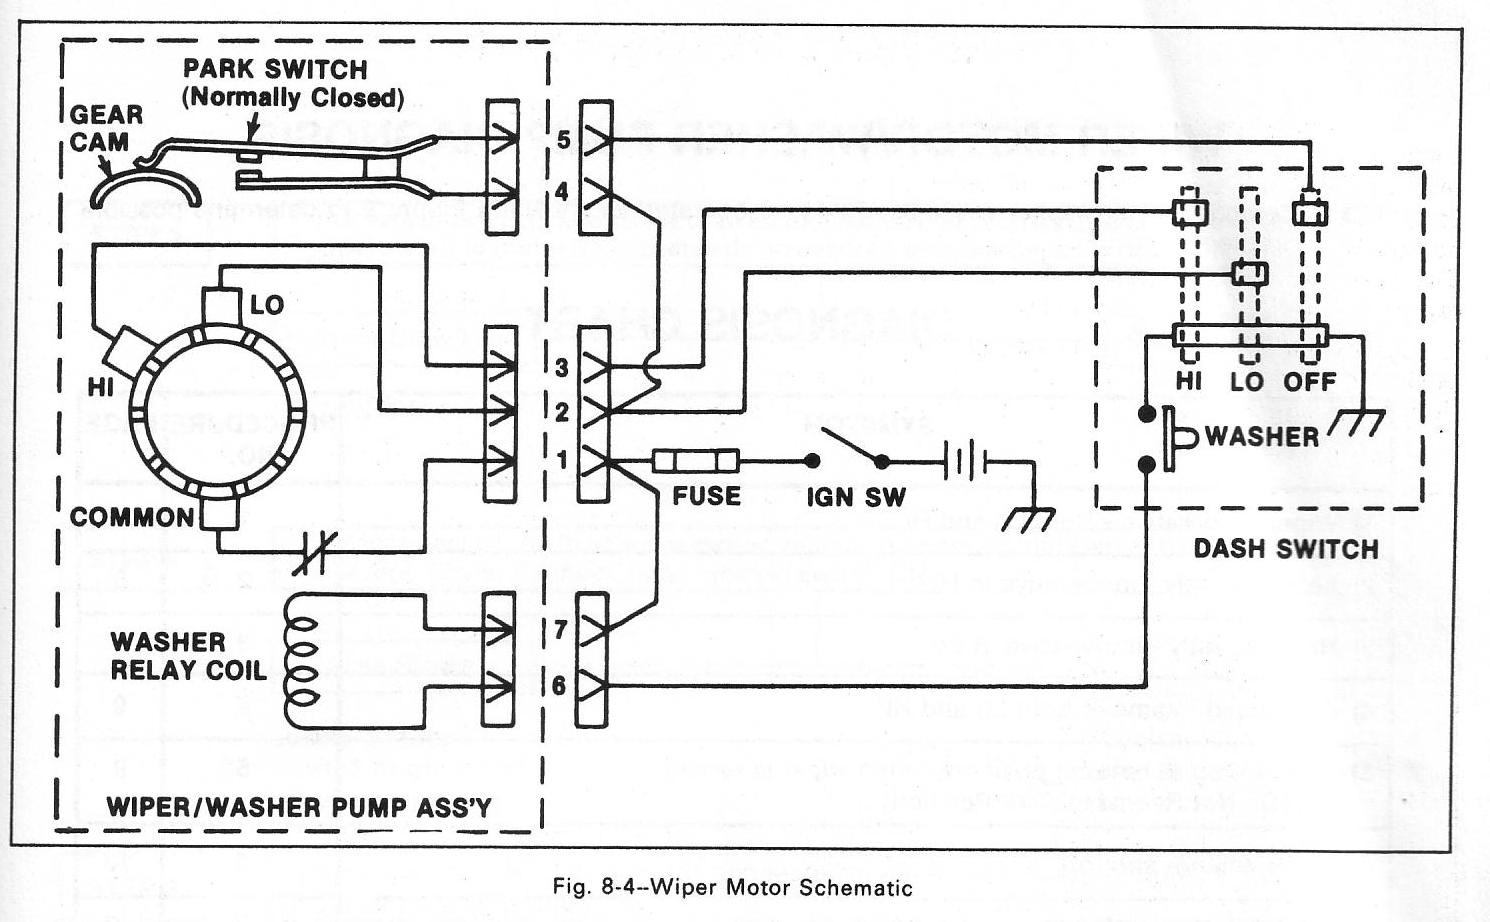 hight resolution of 1970 camaro wiper motor wiring best site wiring harness 1972 chevy camaro wiring diagram gm starter